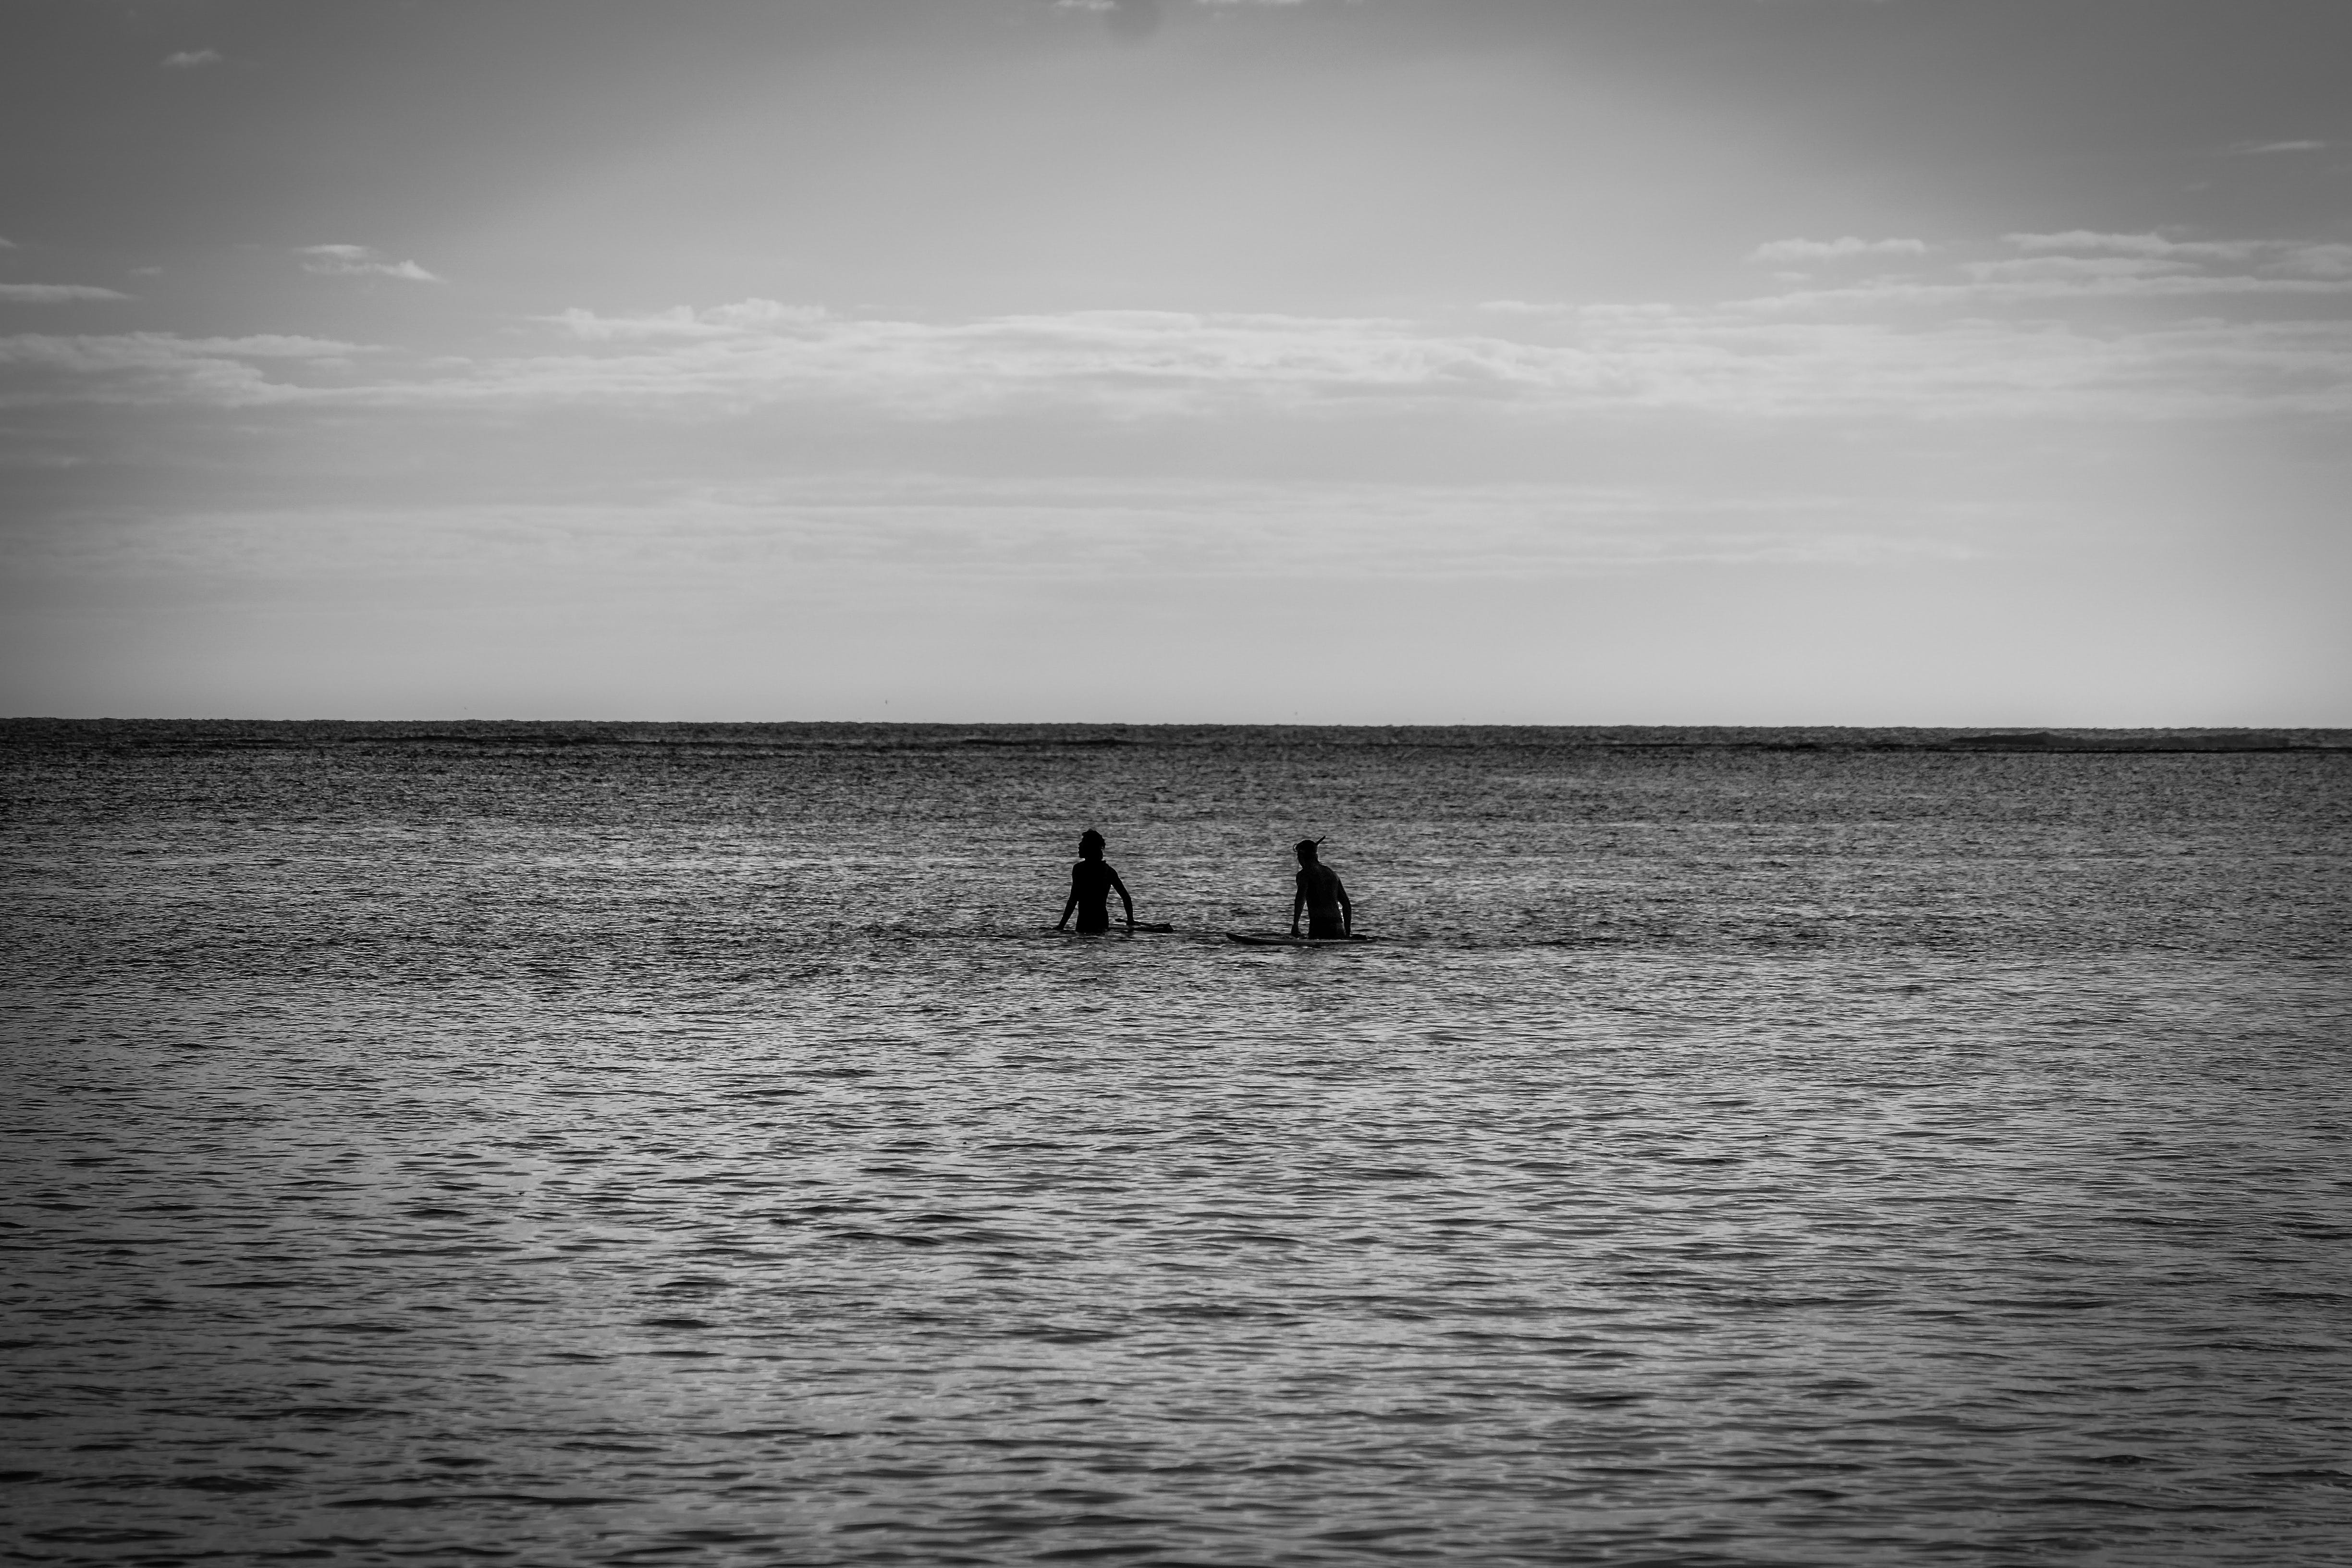 Grayscale Photography of Two Person in Body of Water